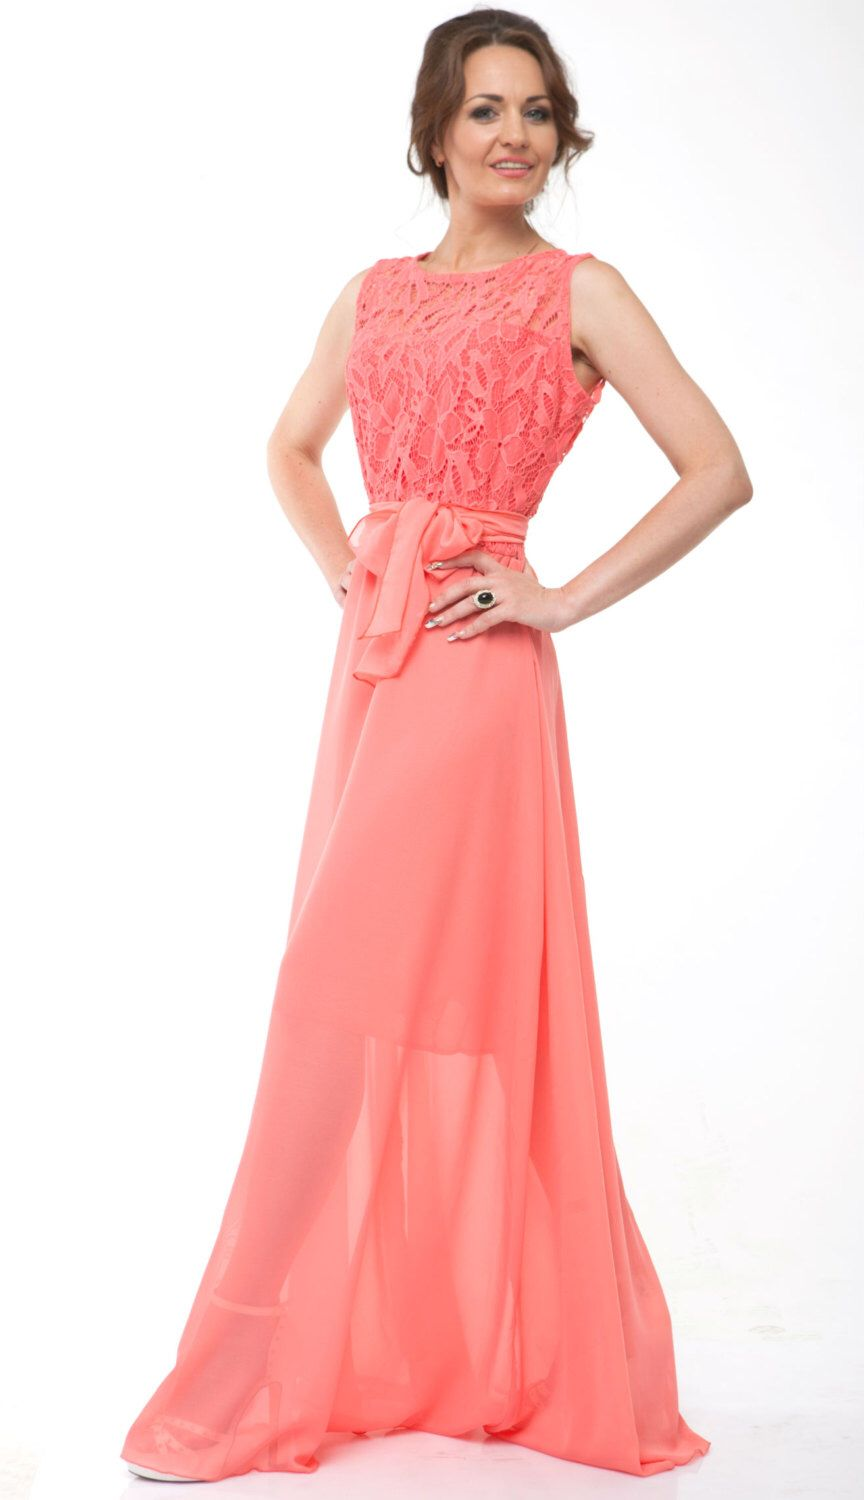 Coral Bridesmaid Dress Chiffon Coral Evening Dress Wedding Coral ...